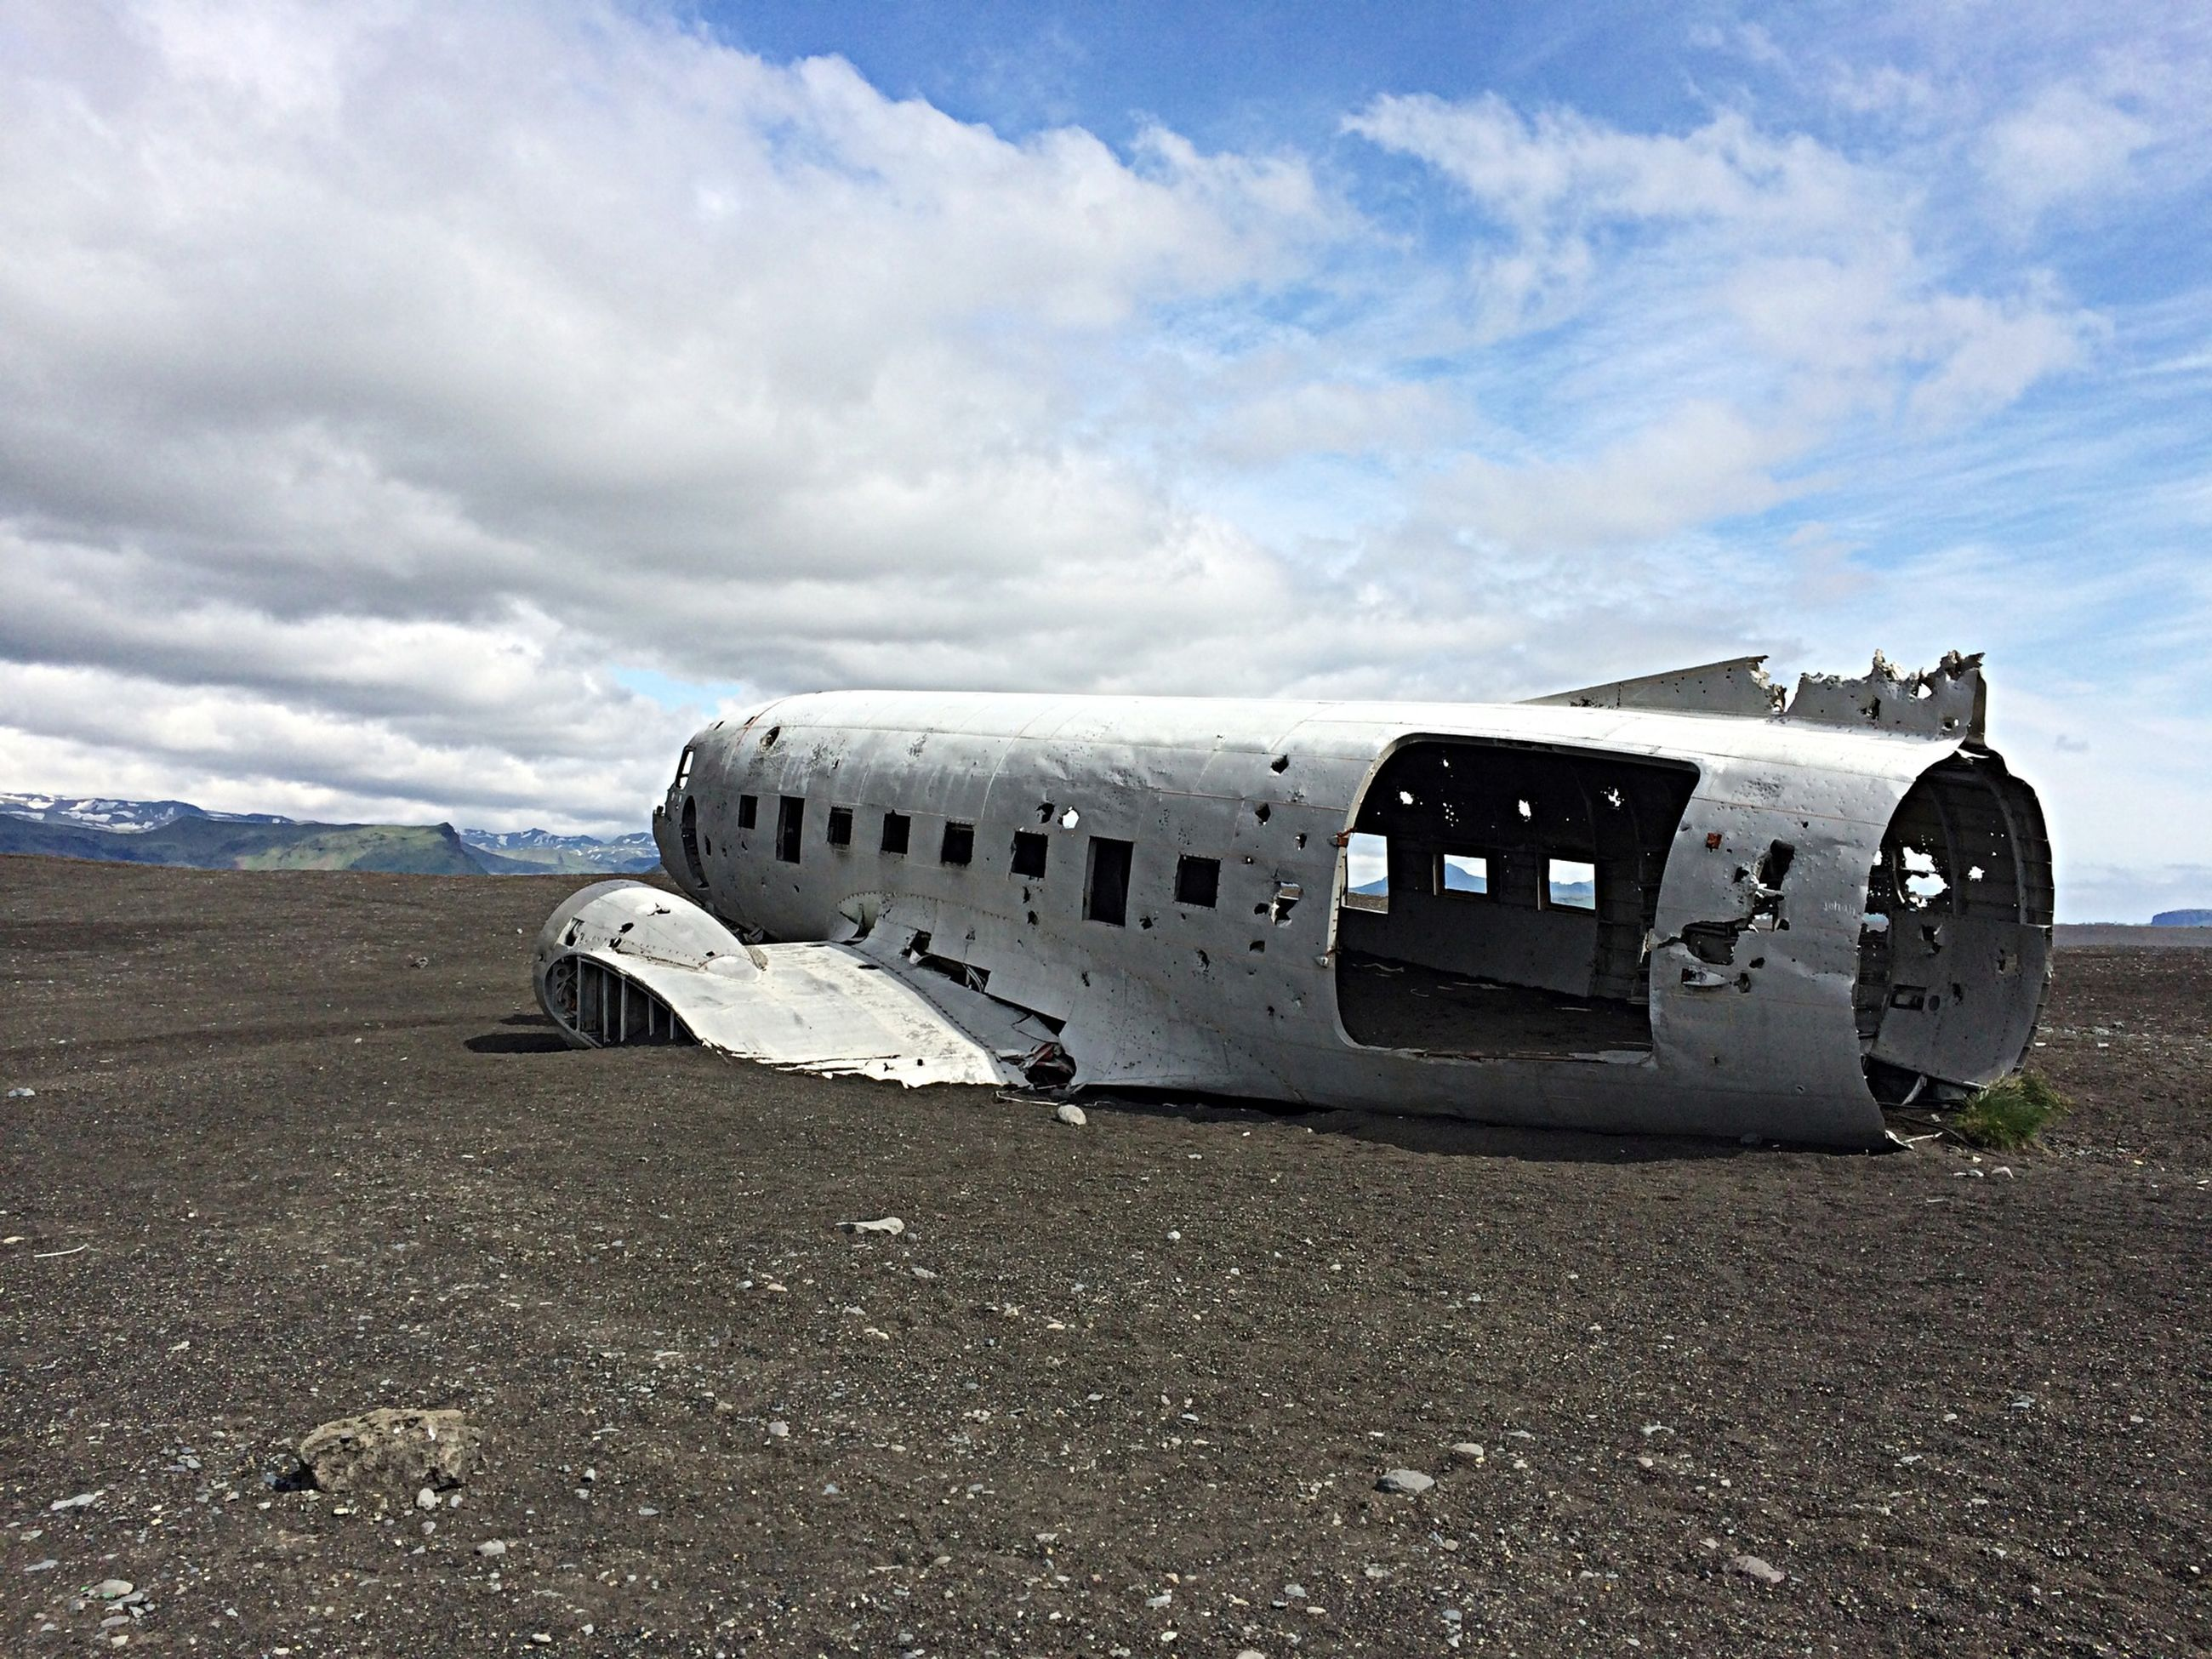 transportation, sky, cloud - sky, mode of transport, abandoned, land vehicle, obsolete, damaged, car, cloud, run-down, landscape, cloudy, day, deterioration, travel, old, built structure, no people, outdoors